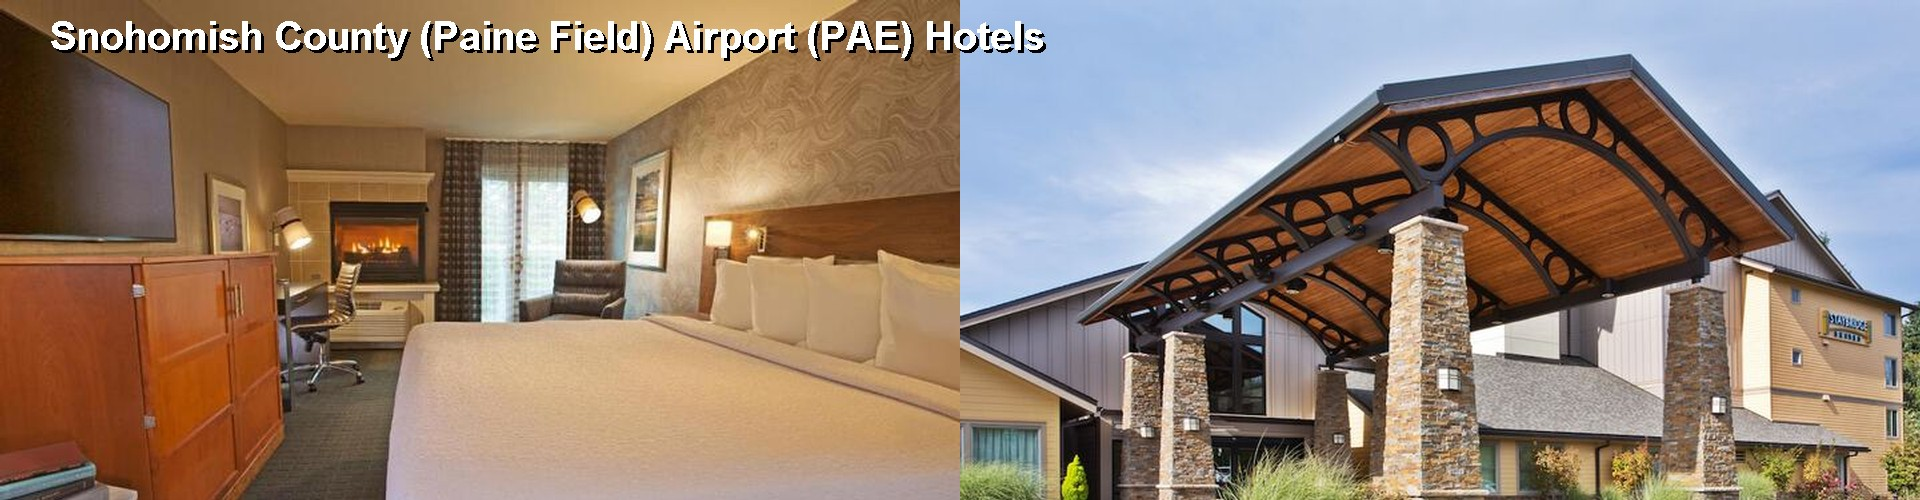 5 Best Hotels near Snohomish County (Paine Field) Airport (PAE)